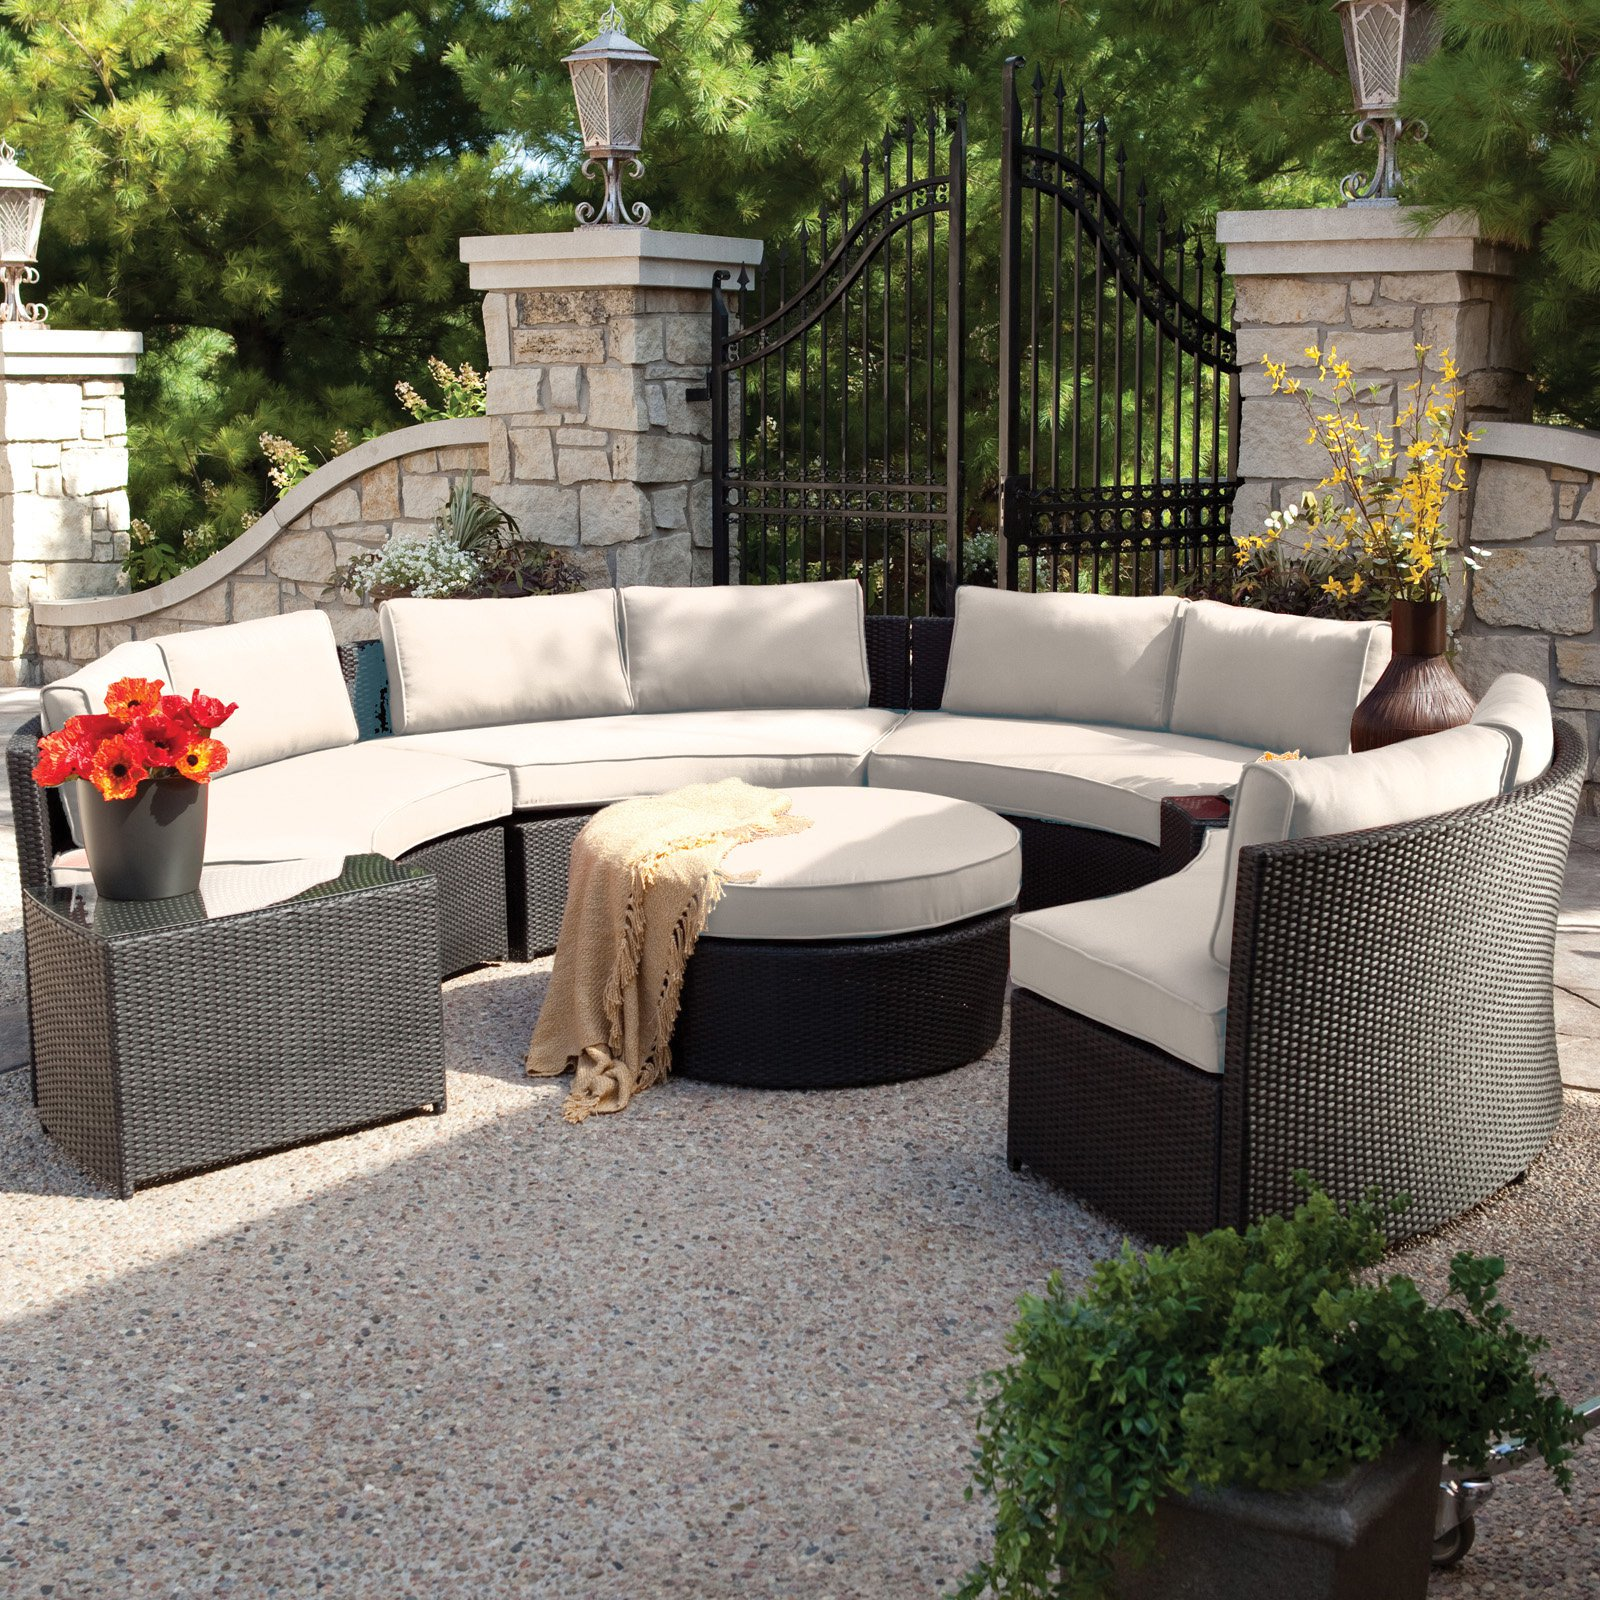 charming outdoor sectional furniture cushions diy couch garden hampton plans canadian set sets cover covers replacement bay sunbrella corner patio tire wood modern sandhill sofa